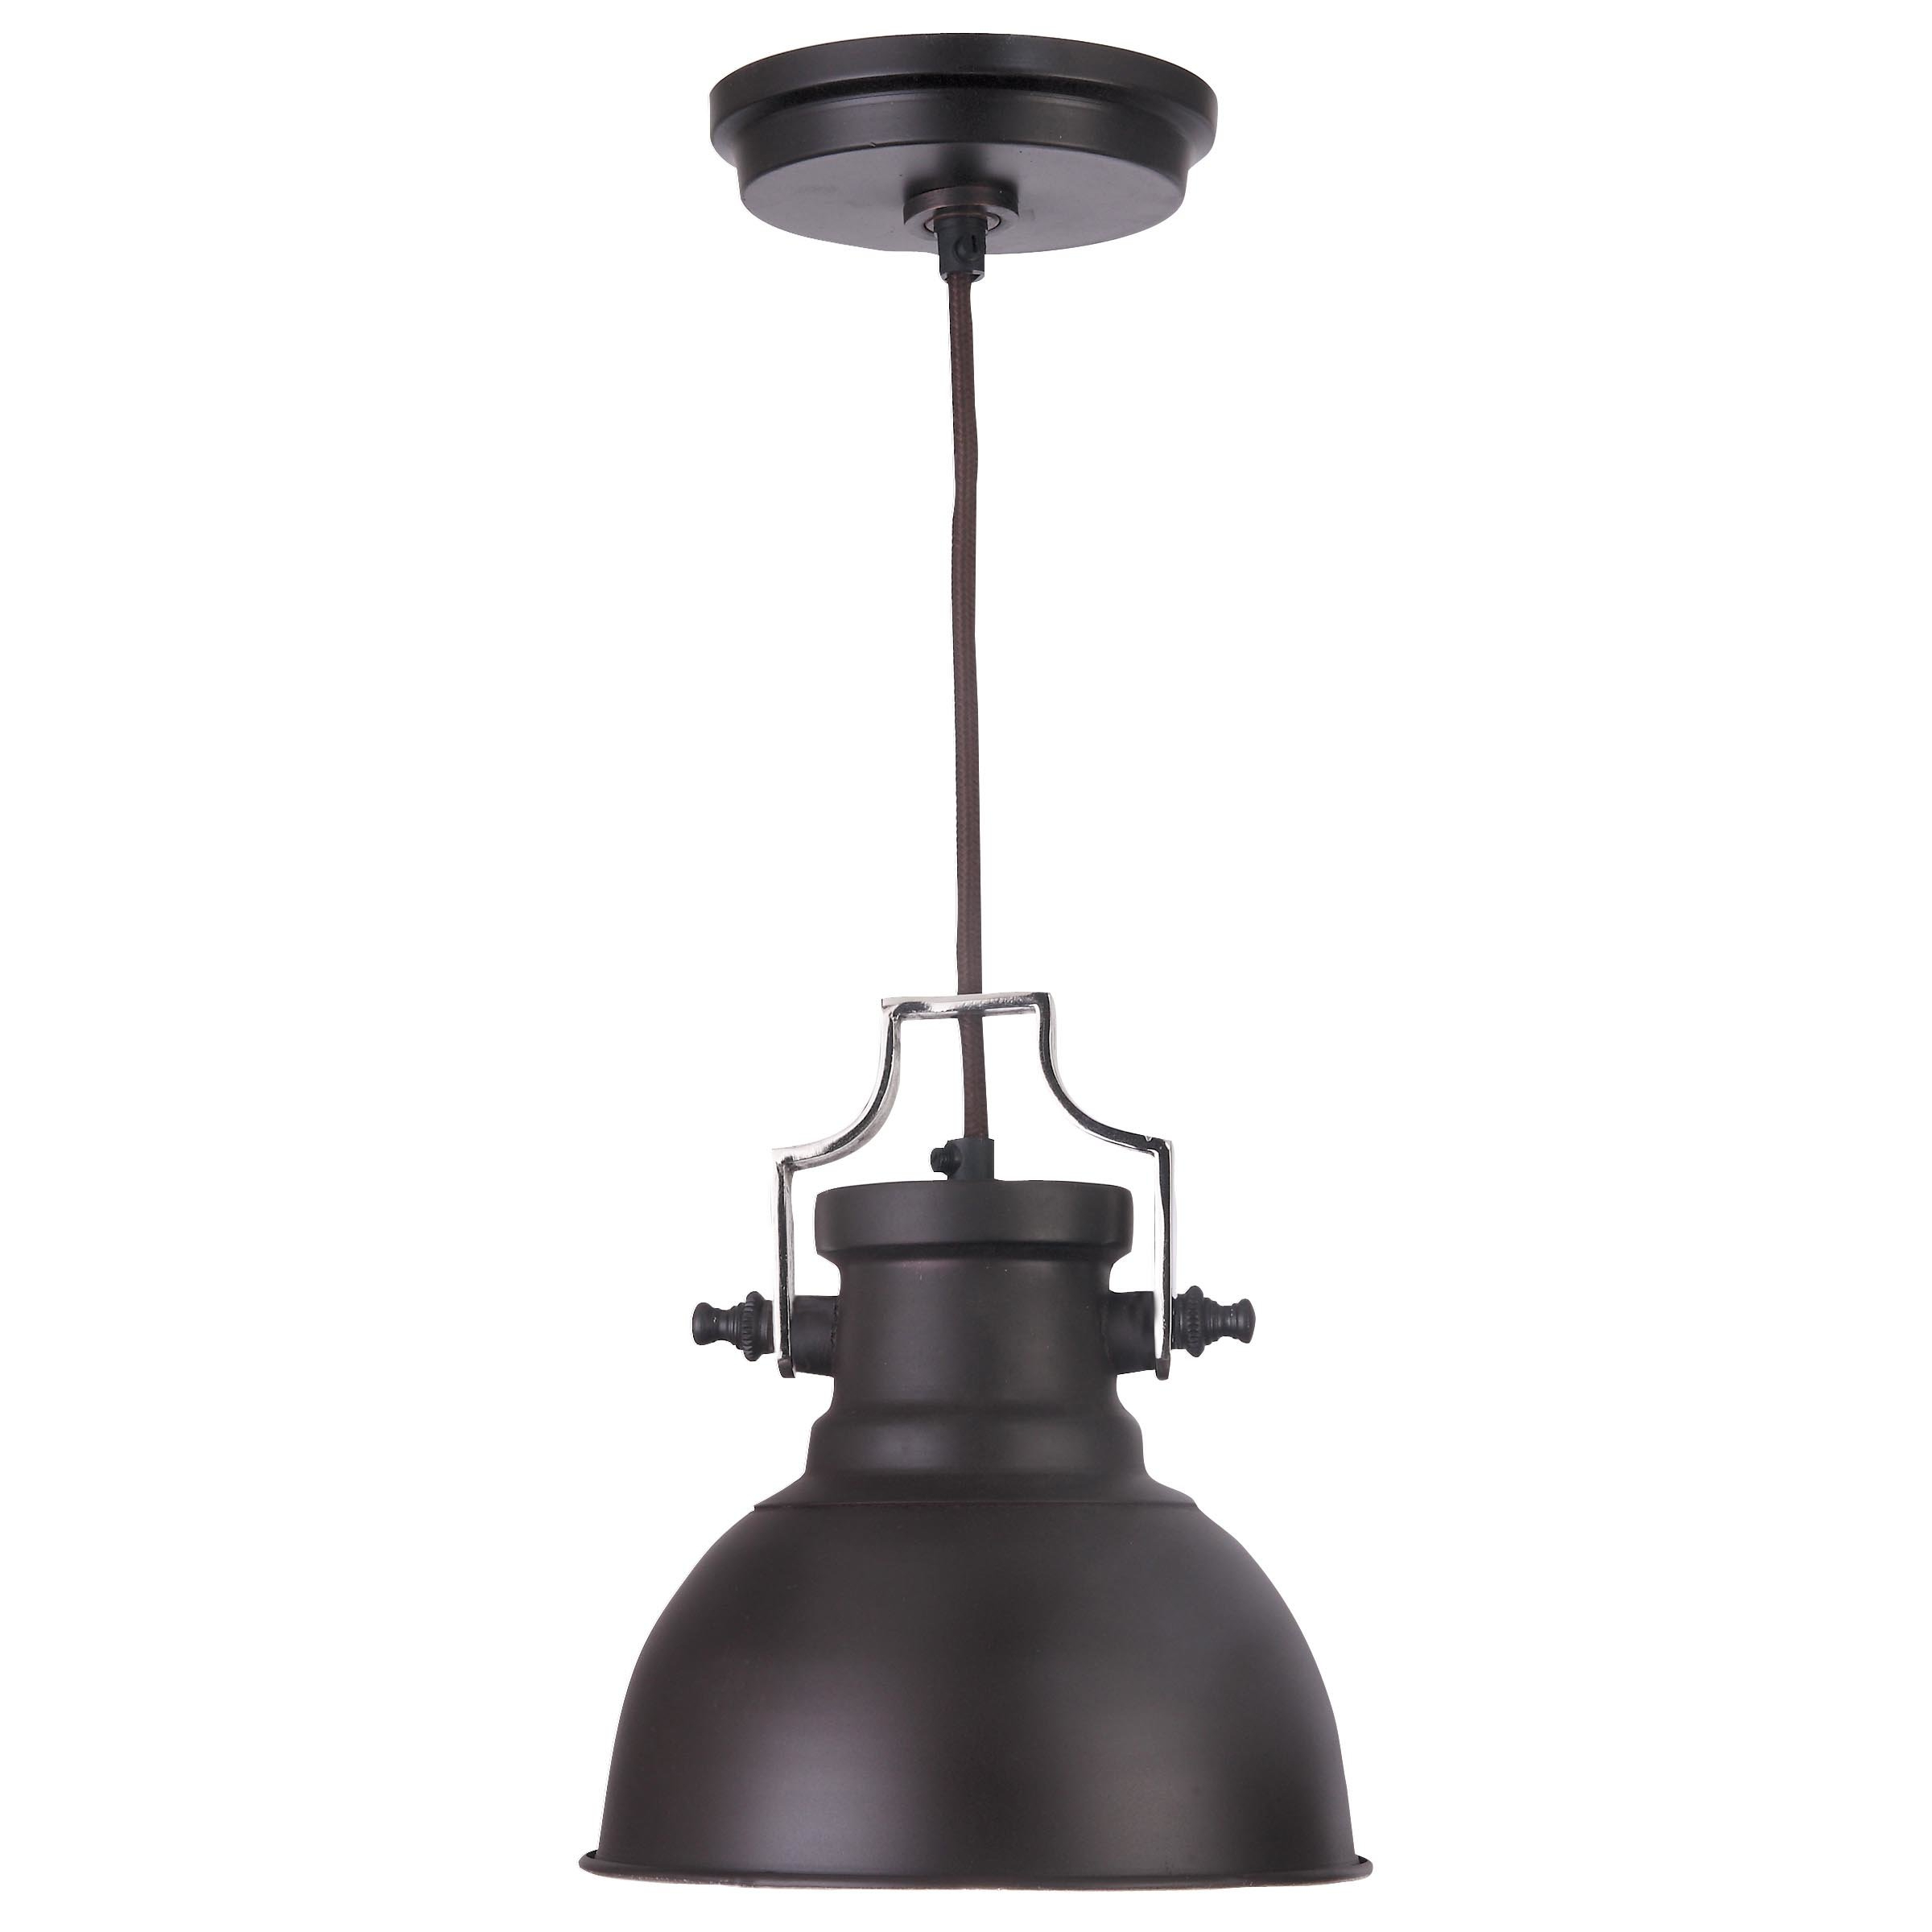 Widely Used Priston 1 Light Single Dome Pendants Regarding Jules 1 Light Single Dome Pendant (View 16 of 20)